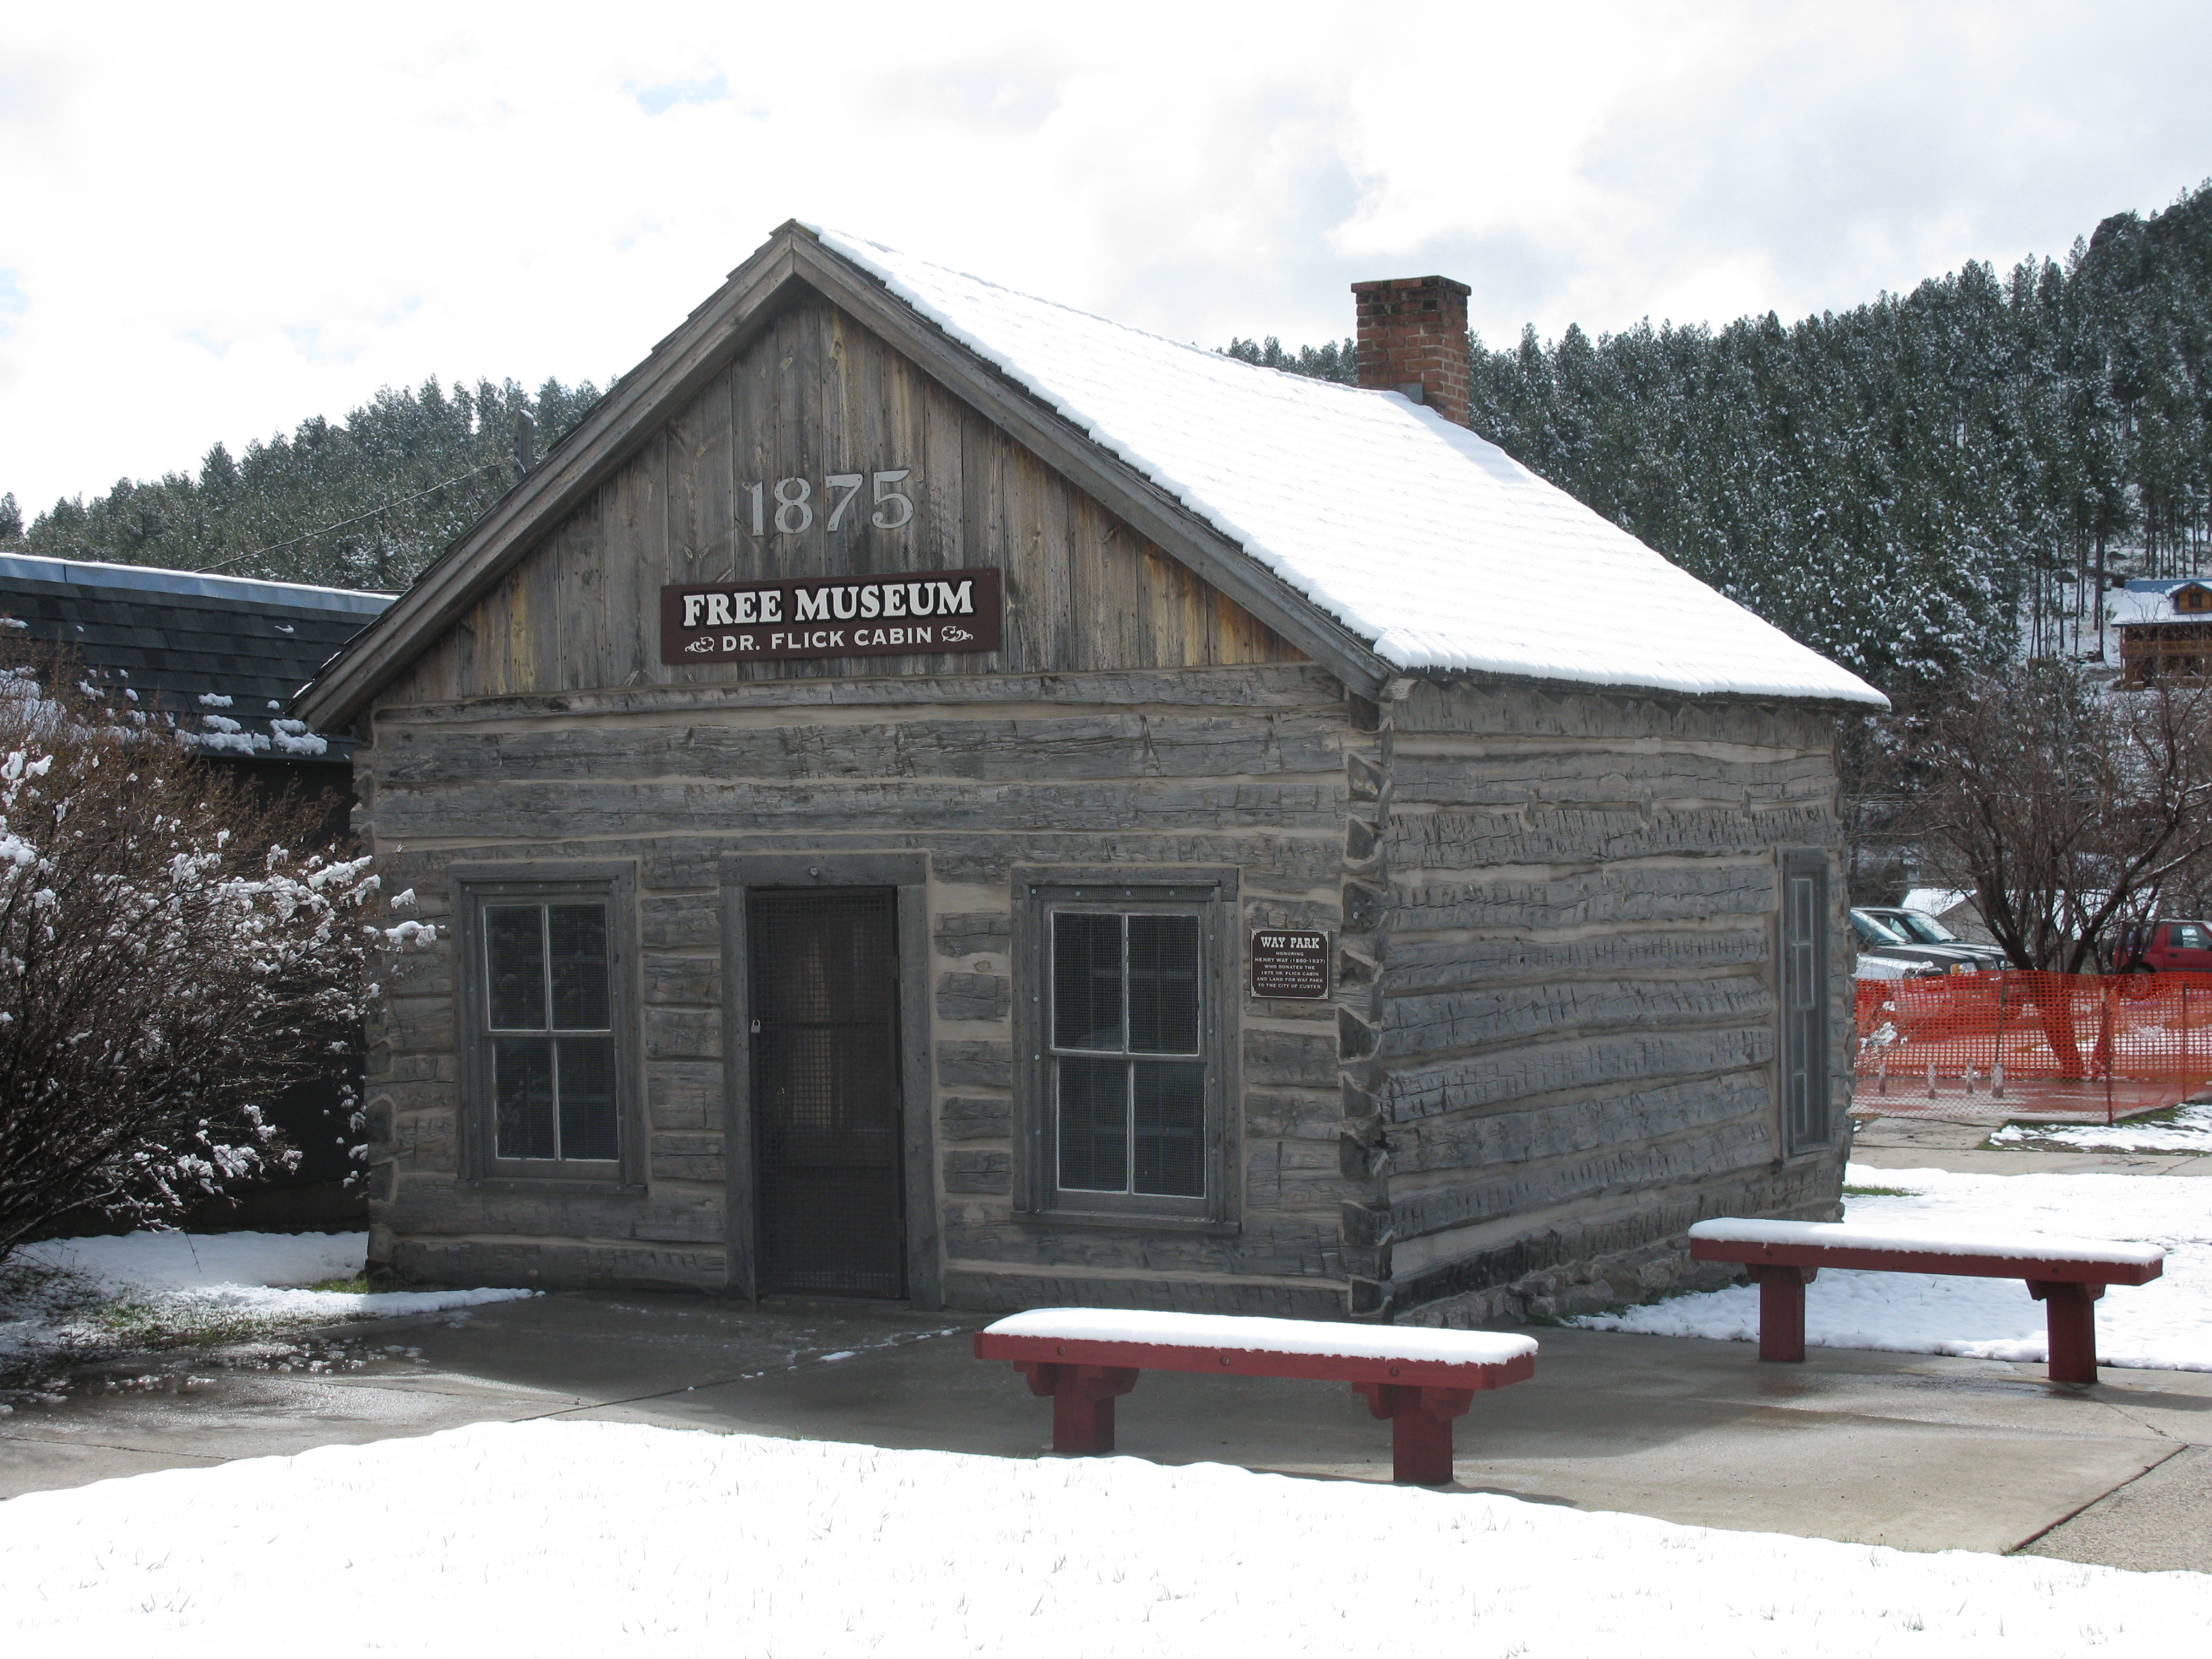 The Flick Cabin image